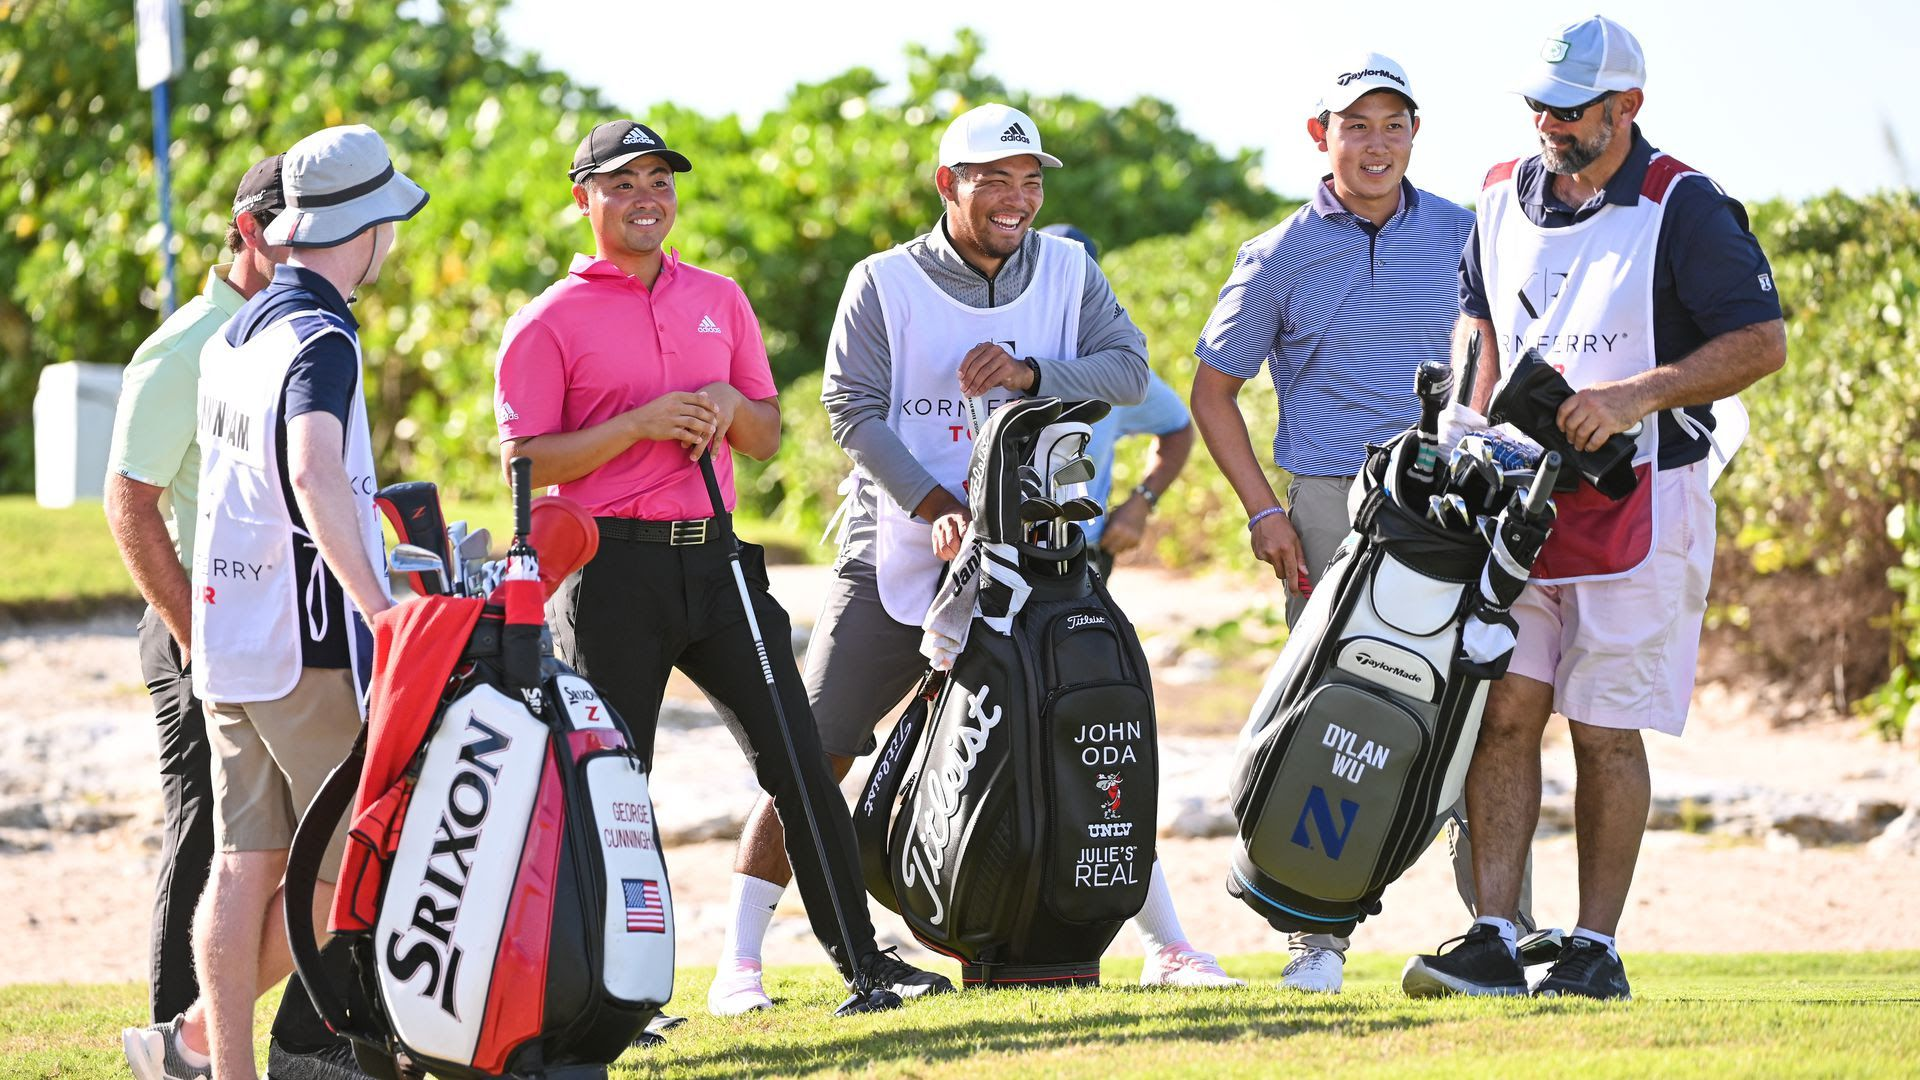 Golf caddies will be able to cash in on endorsement deals